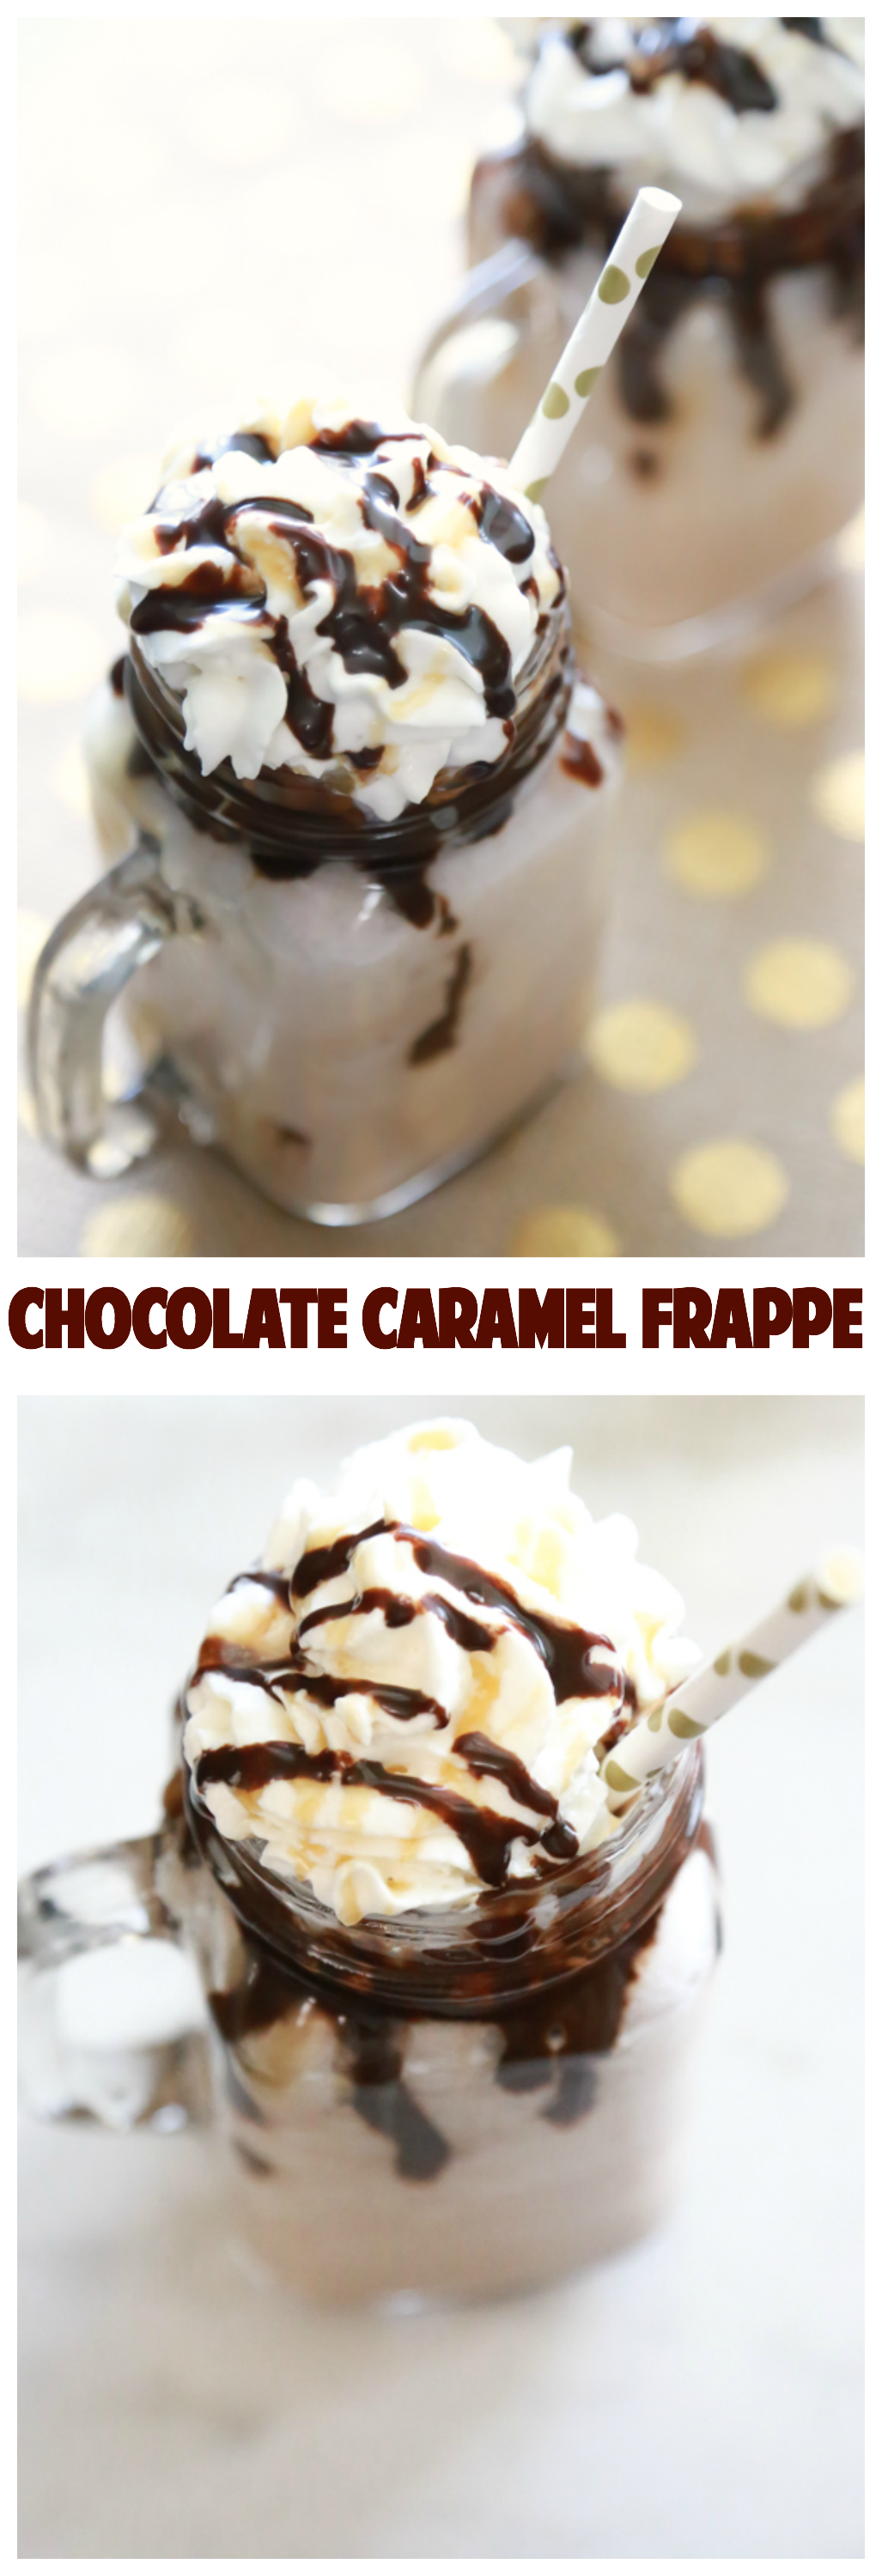 Skip the expensive coffeehouse favorites when you can make your own at home. This chocolate Caramel Frappe recipe makes a delicious, cold drink perfect for a hot summer day.